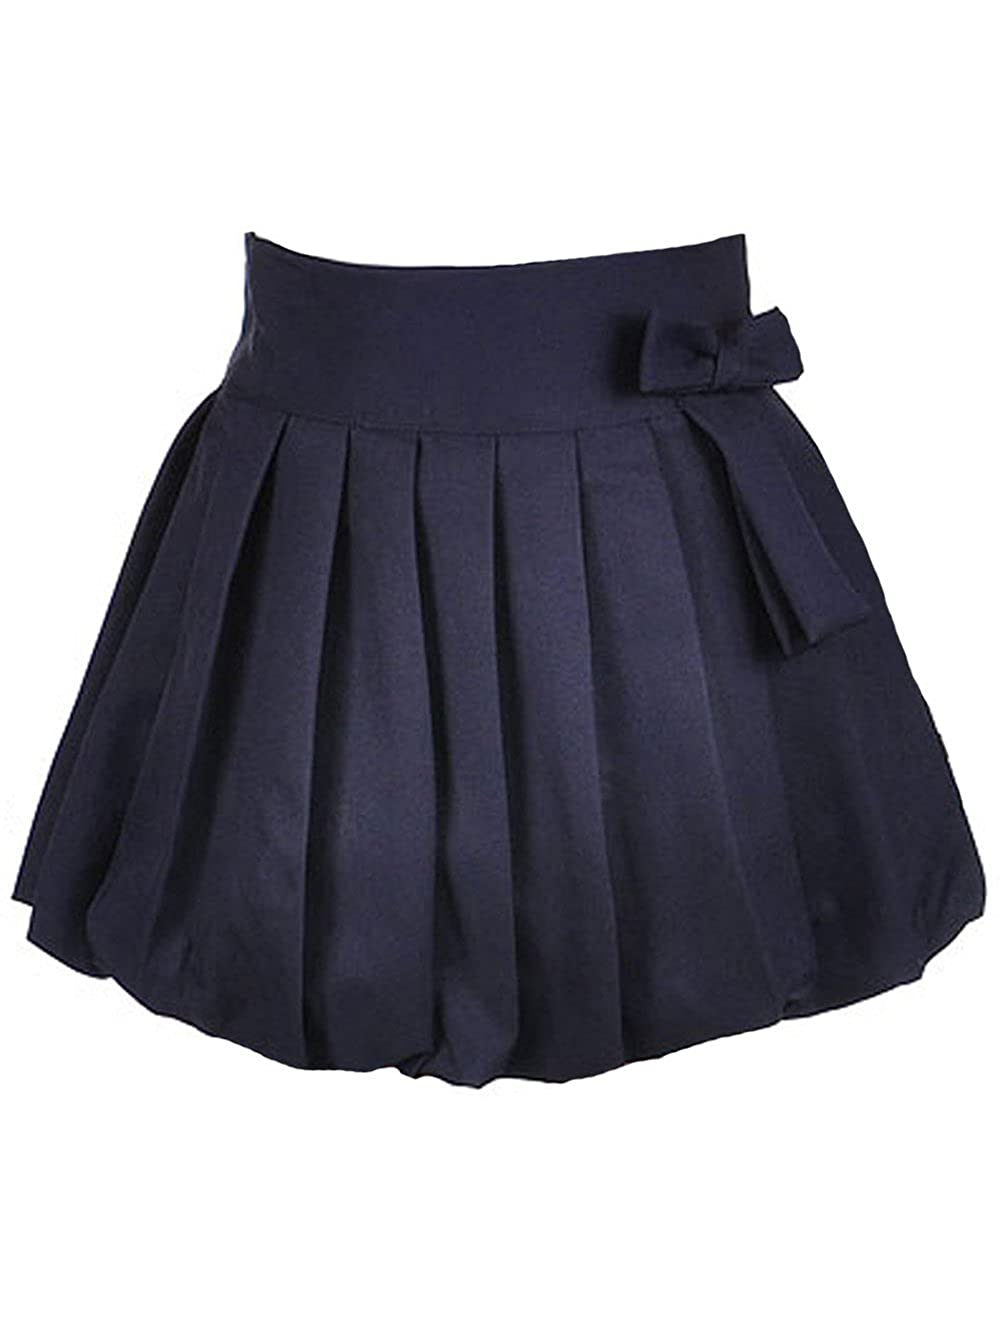 U.S. Polo Assn....... Big Girls' Bubble Pleat Scooter Skirt